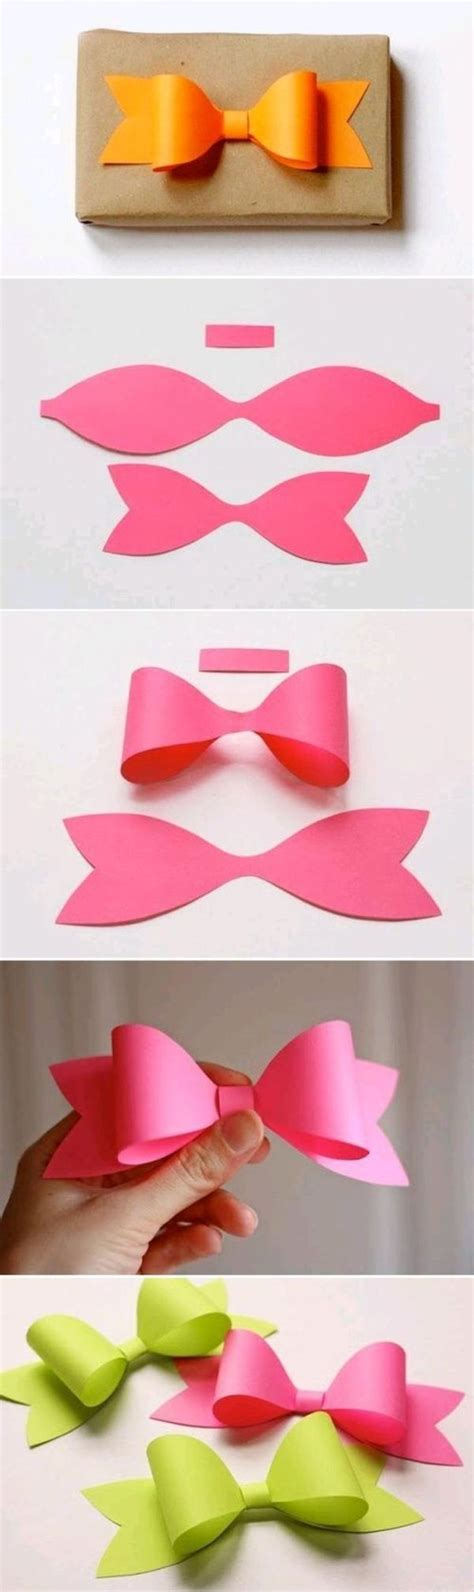 Paper Bows - diy paper bow by corinne bows